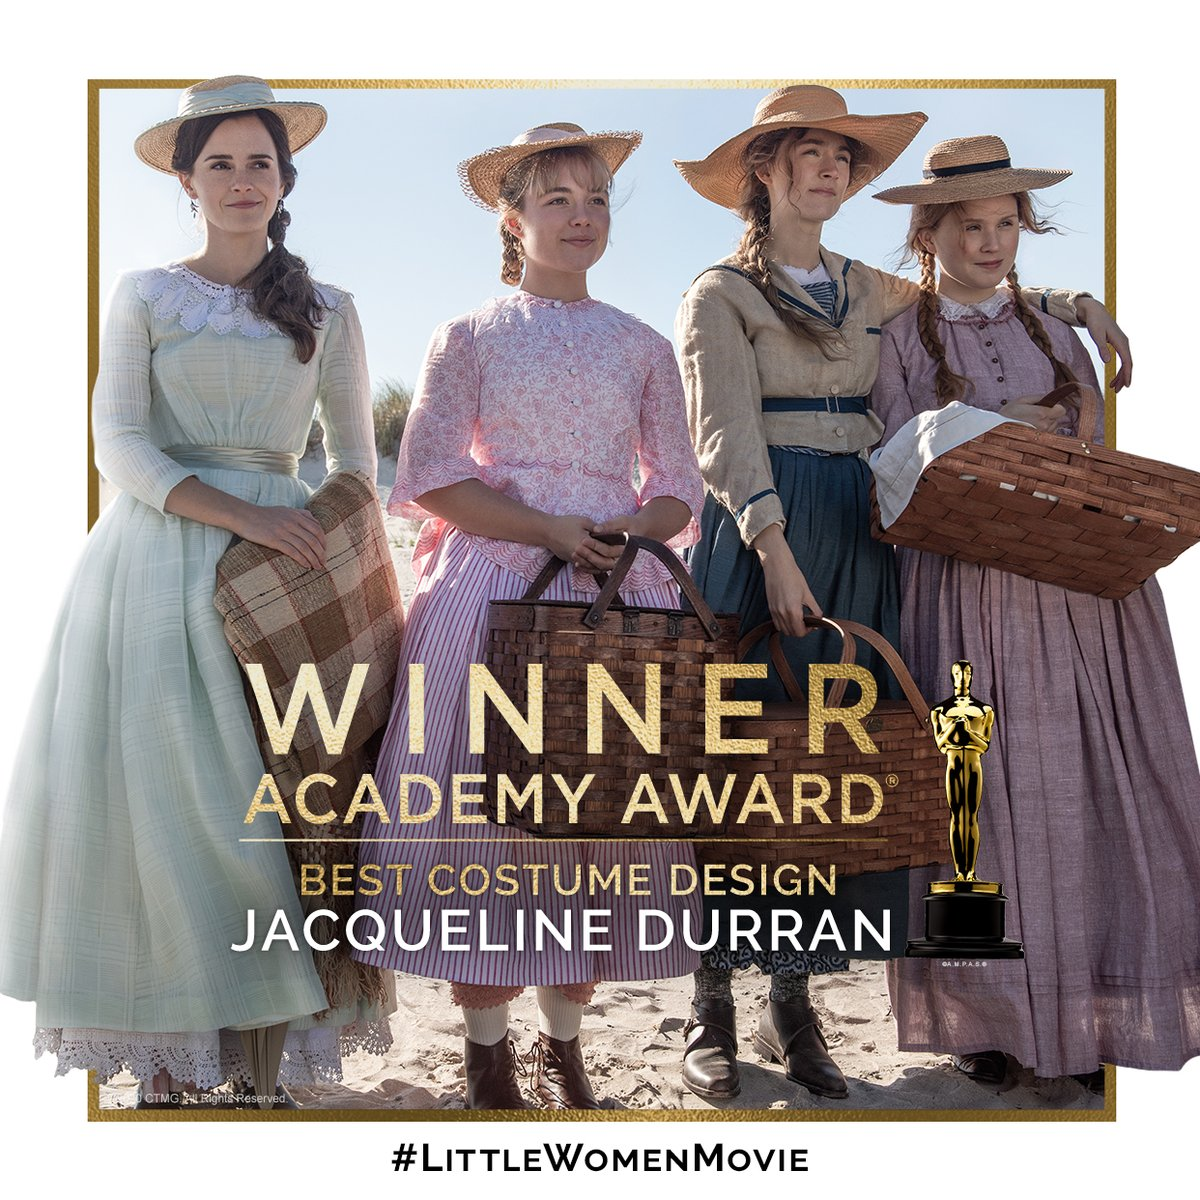 Congratulations to Jacqueline Durran on her #Oscars win for Best Costume Design for #LittleWomenMovie!